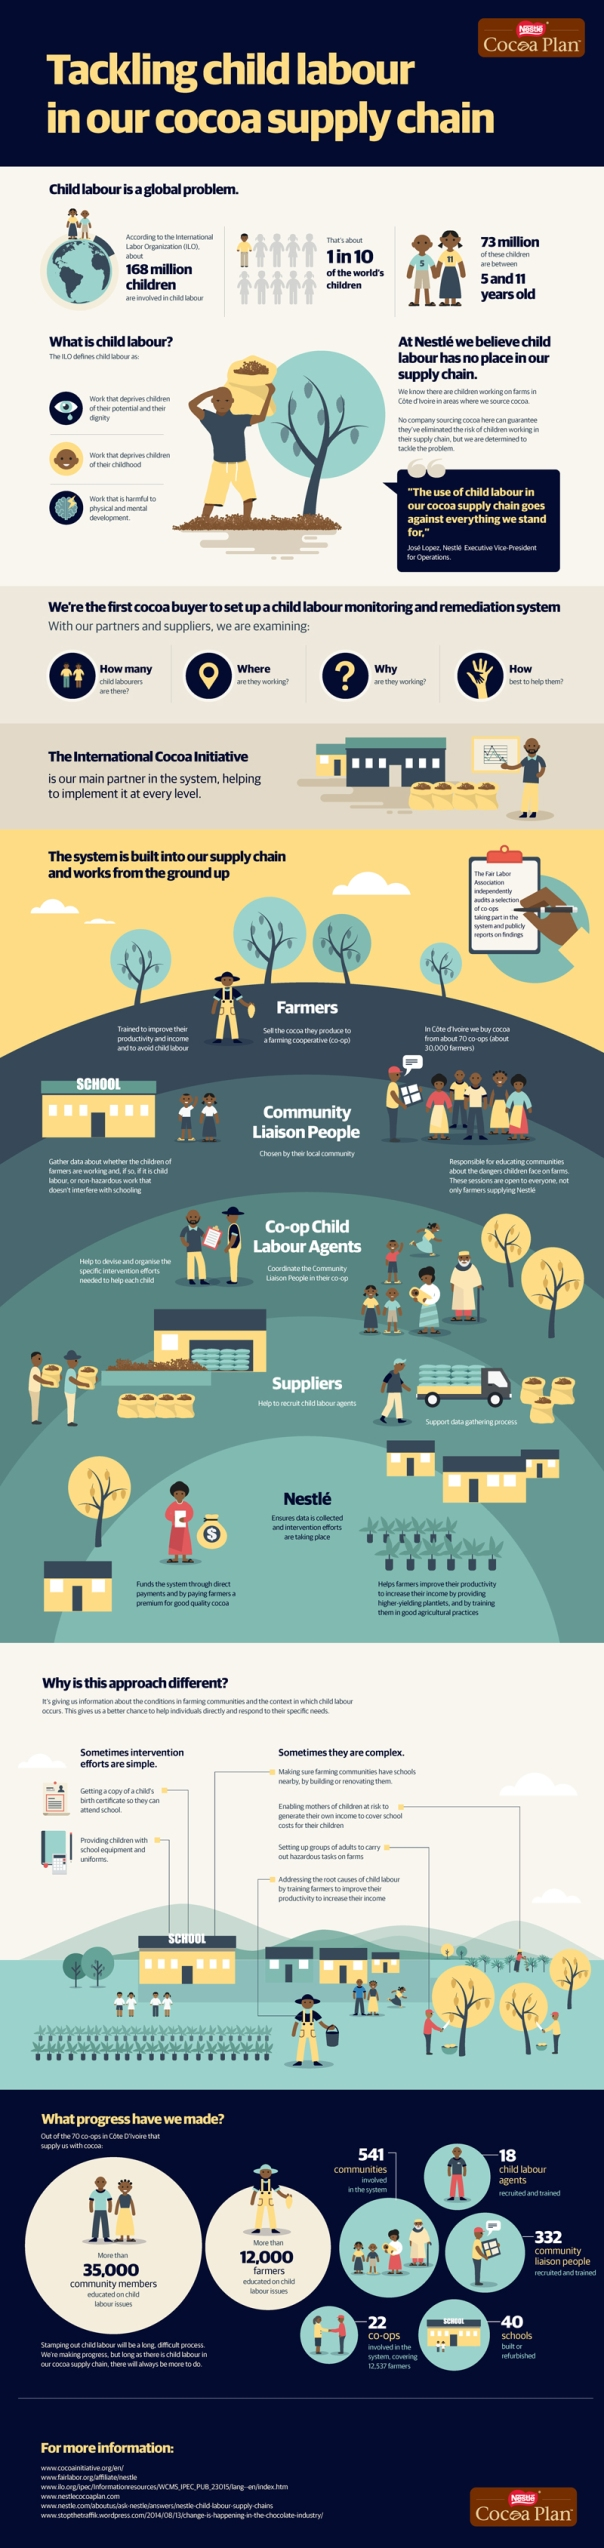 Childlabour-infographic-CP200214-WIP-1.jpg